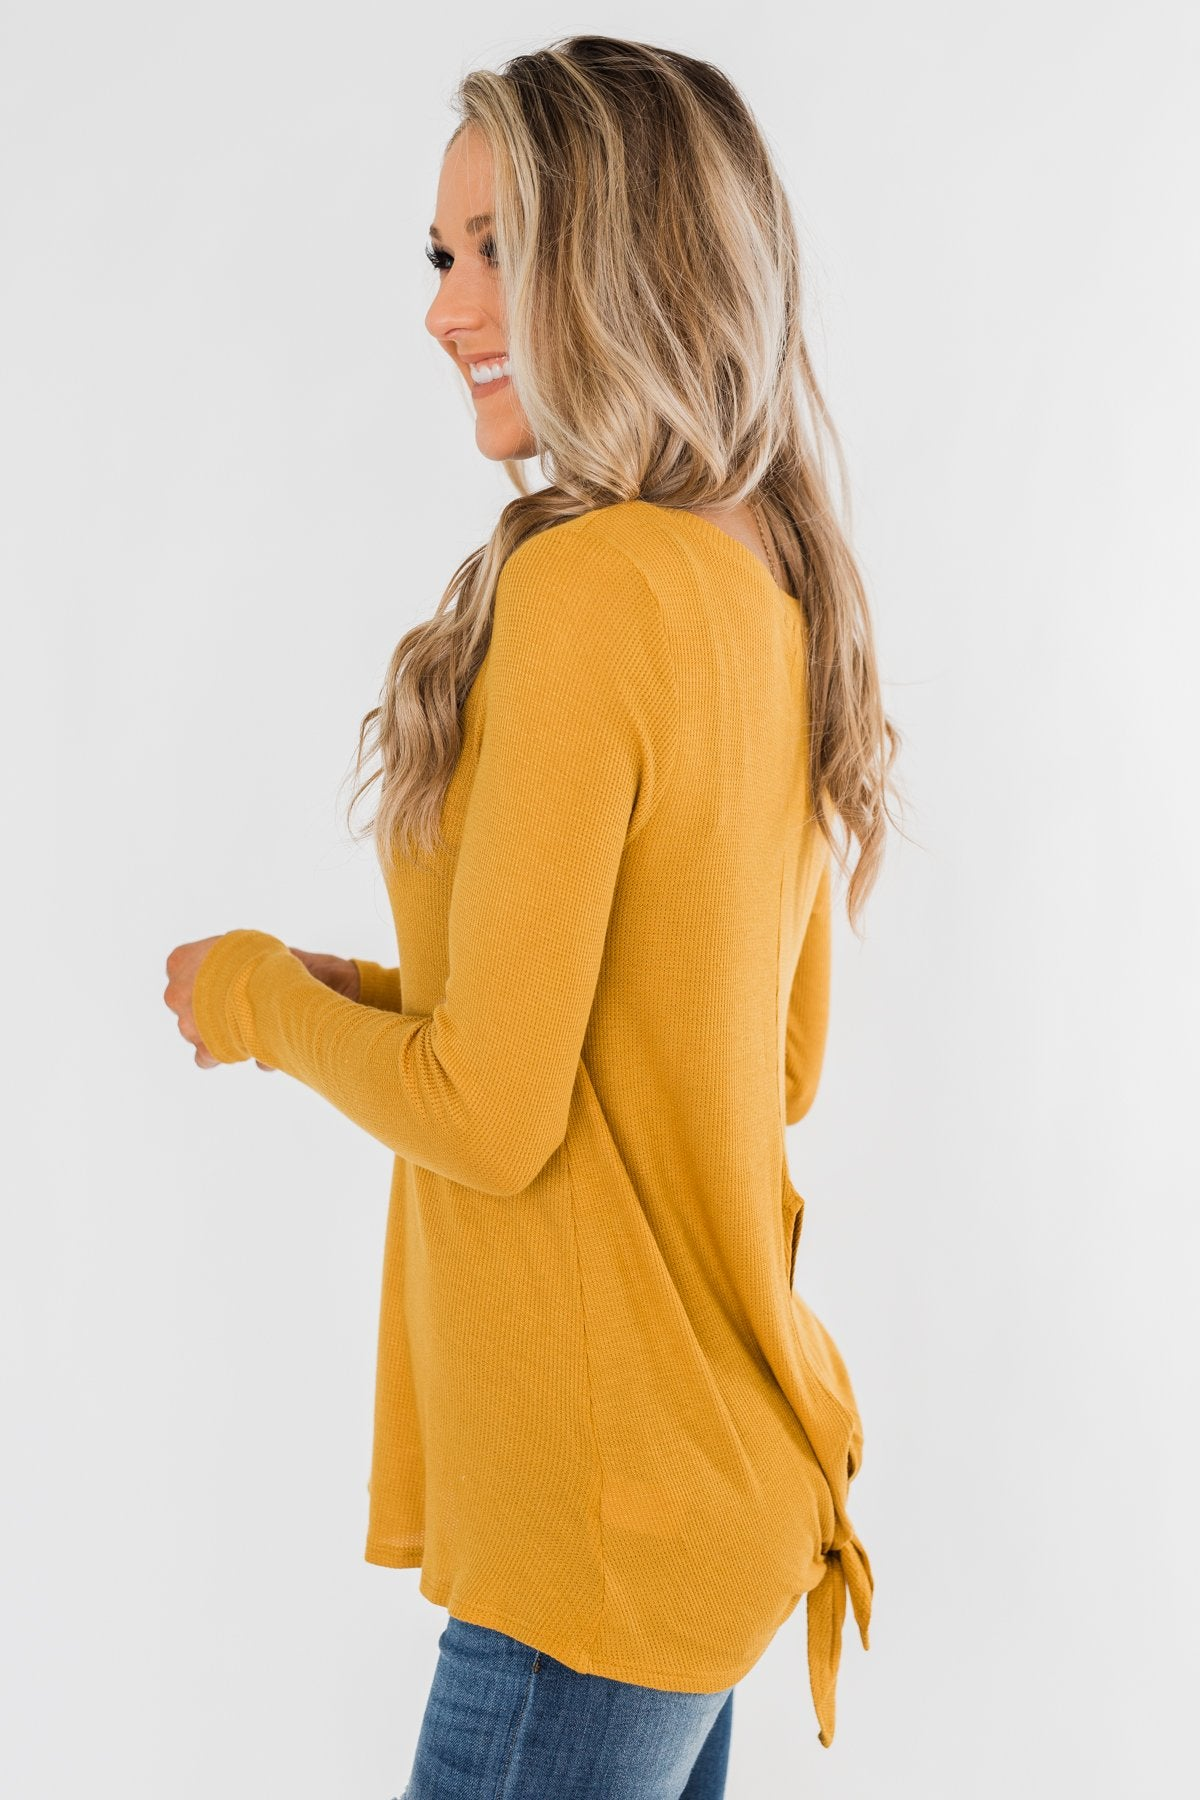 The Best I Can Long Sleeve Top- Mustard